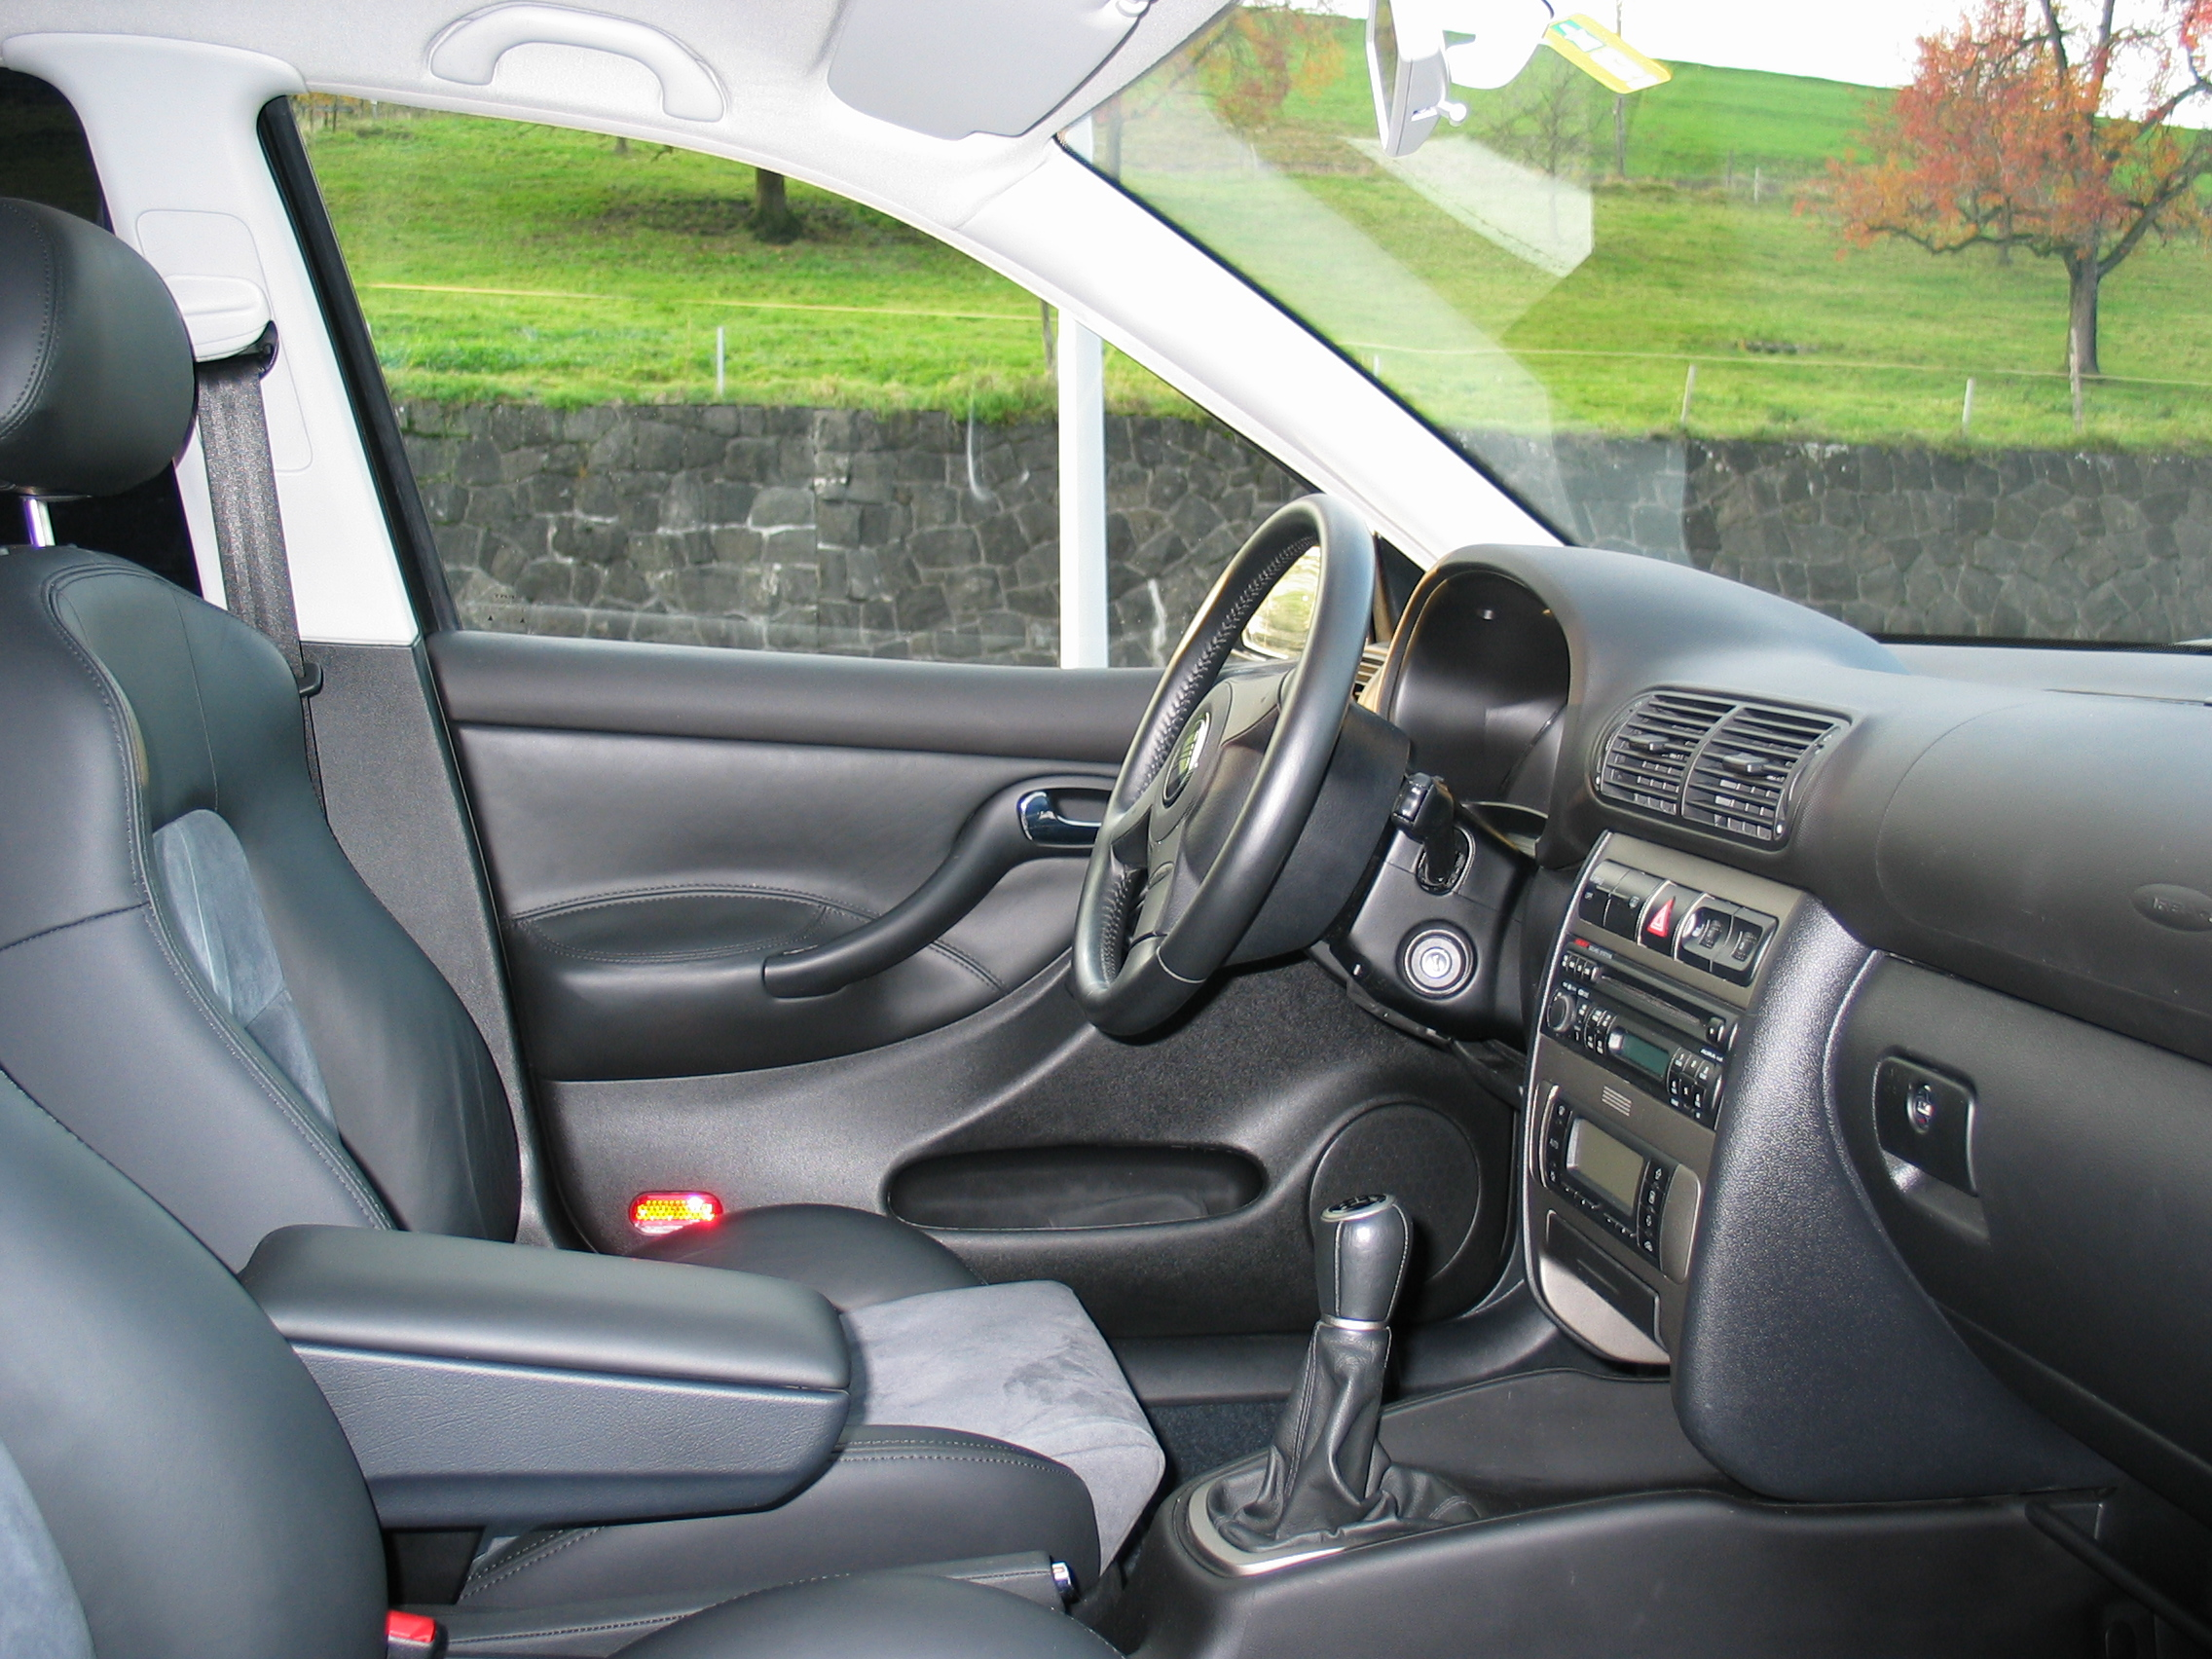 2005 Seat Leon ii (1p) – pictures, information and specs - Auto ...